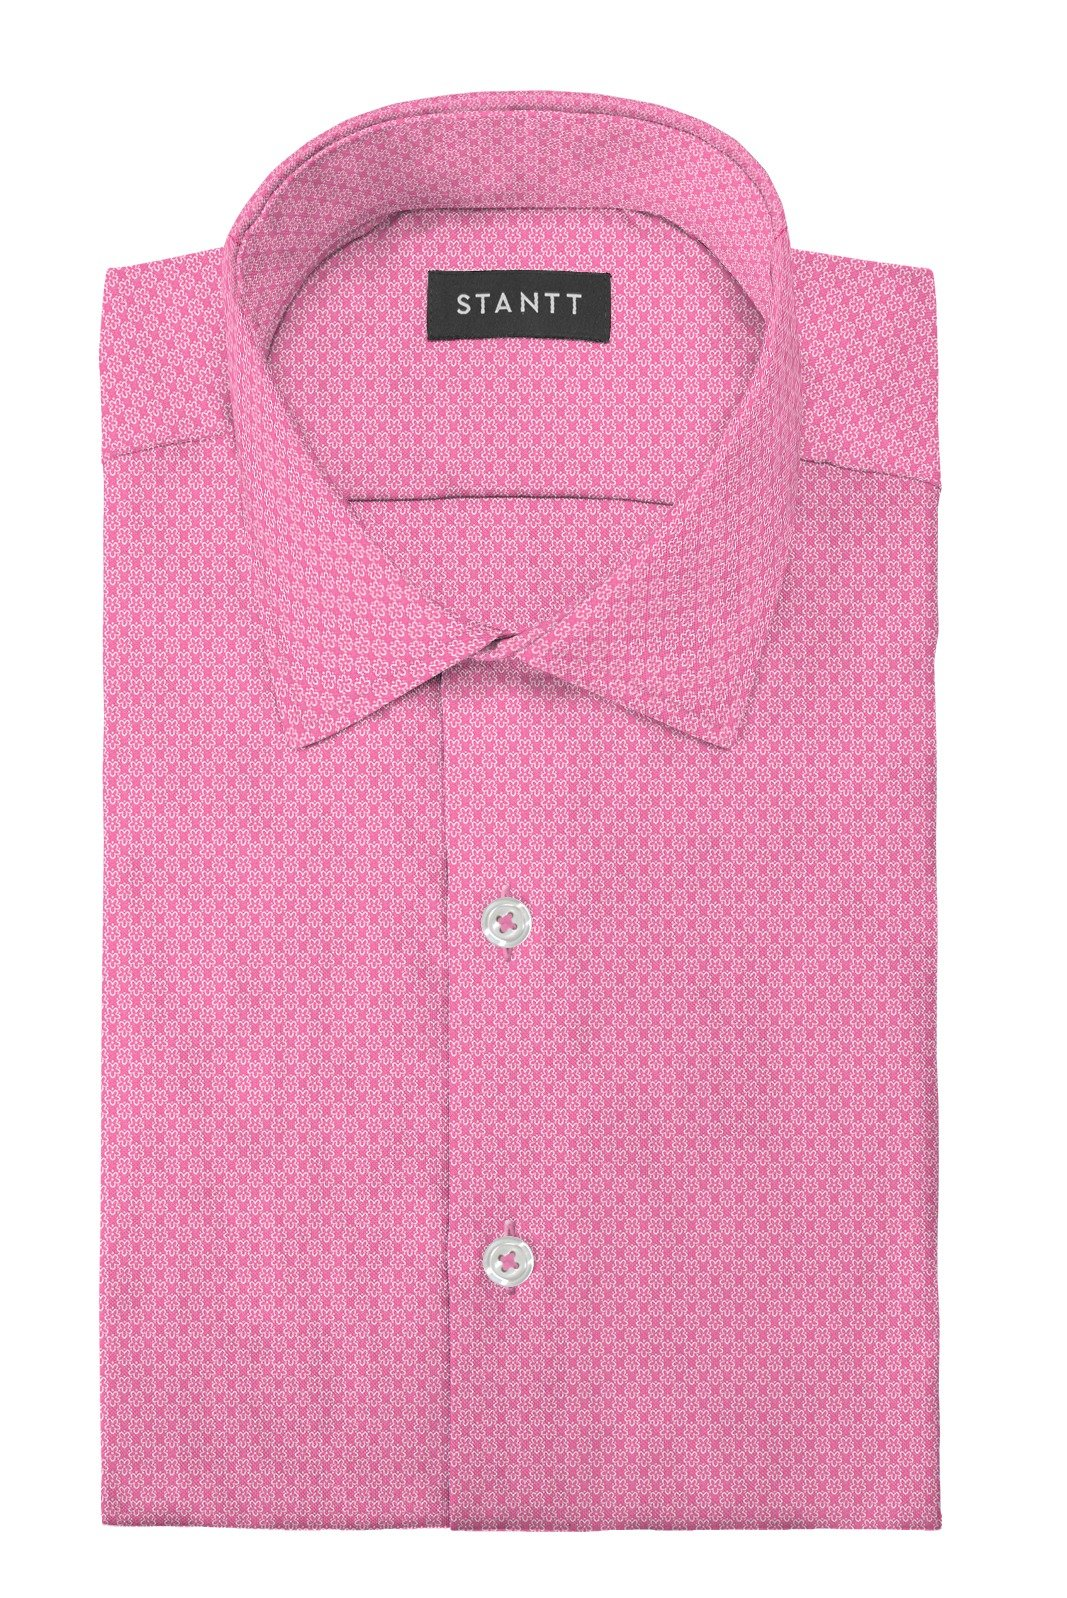 Pop Pink Floral Stretch Cotton: Modified-Spread Collar, Barrel Cuff